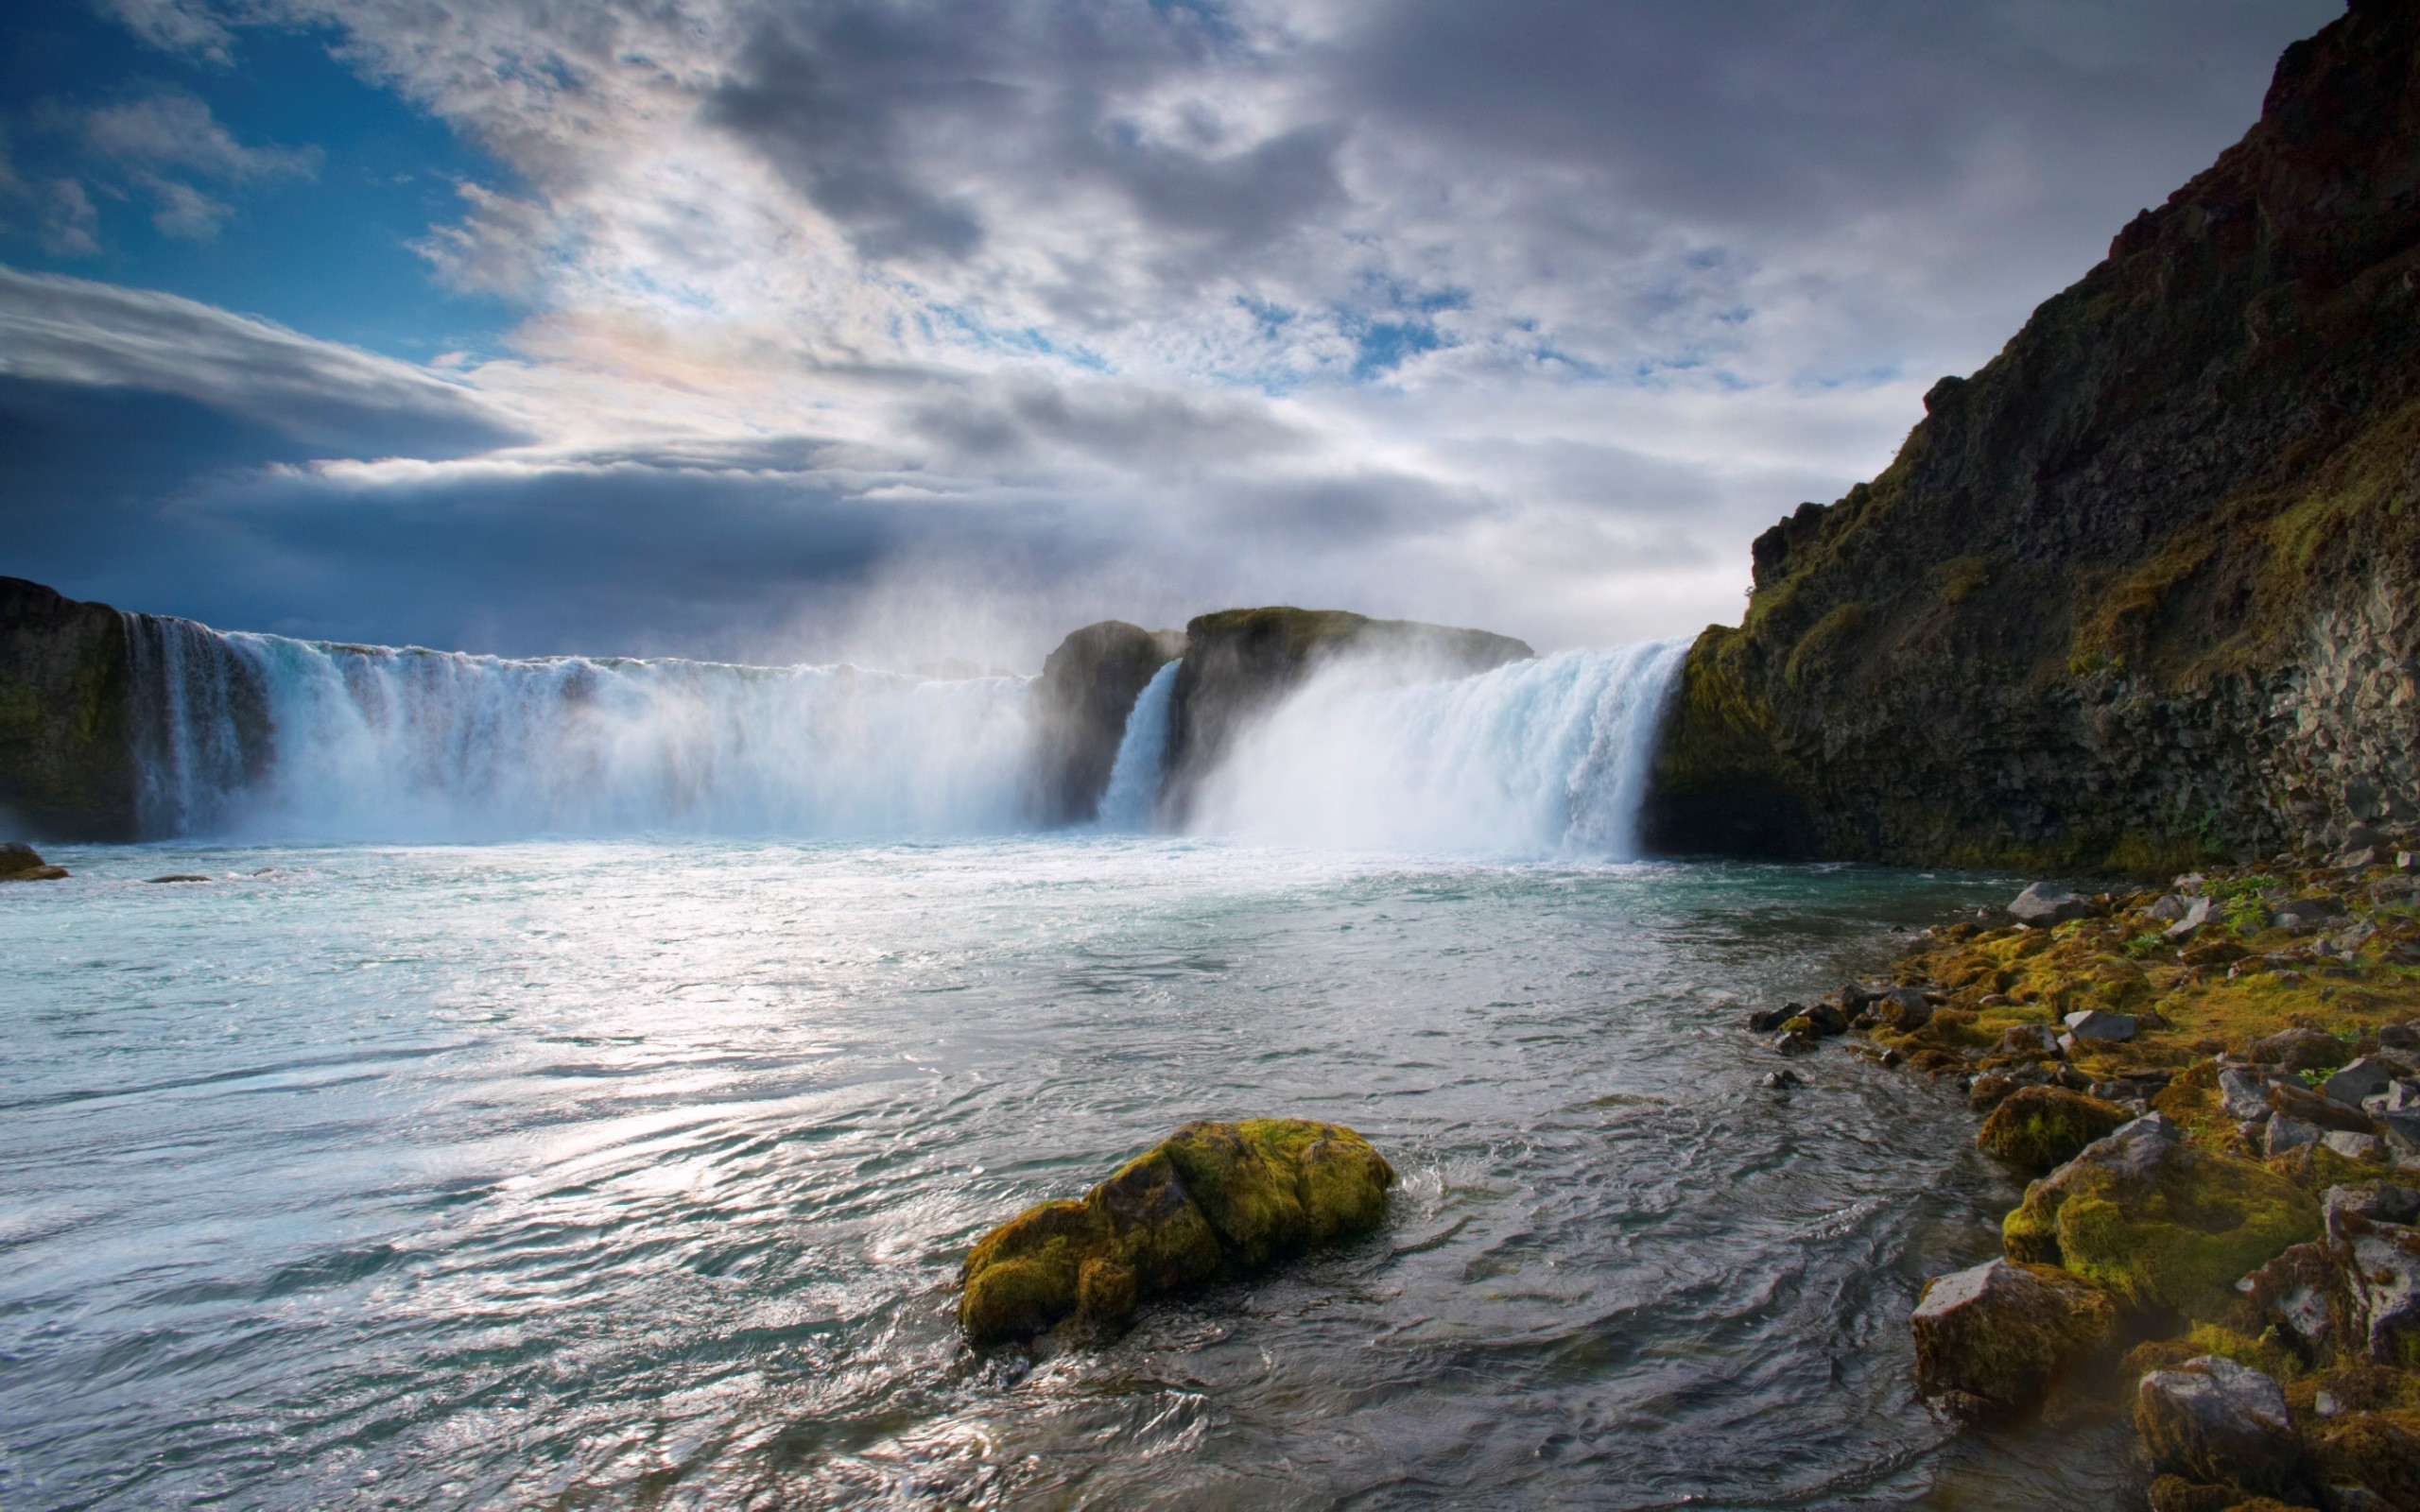 3d Waterfall Wallpaper For Mobile Nature Landscape Iceland Waterfall Wallpapers Hd